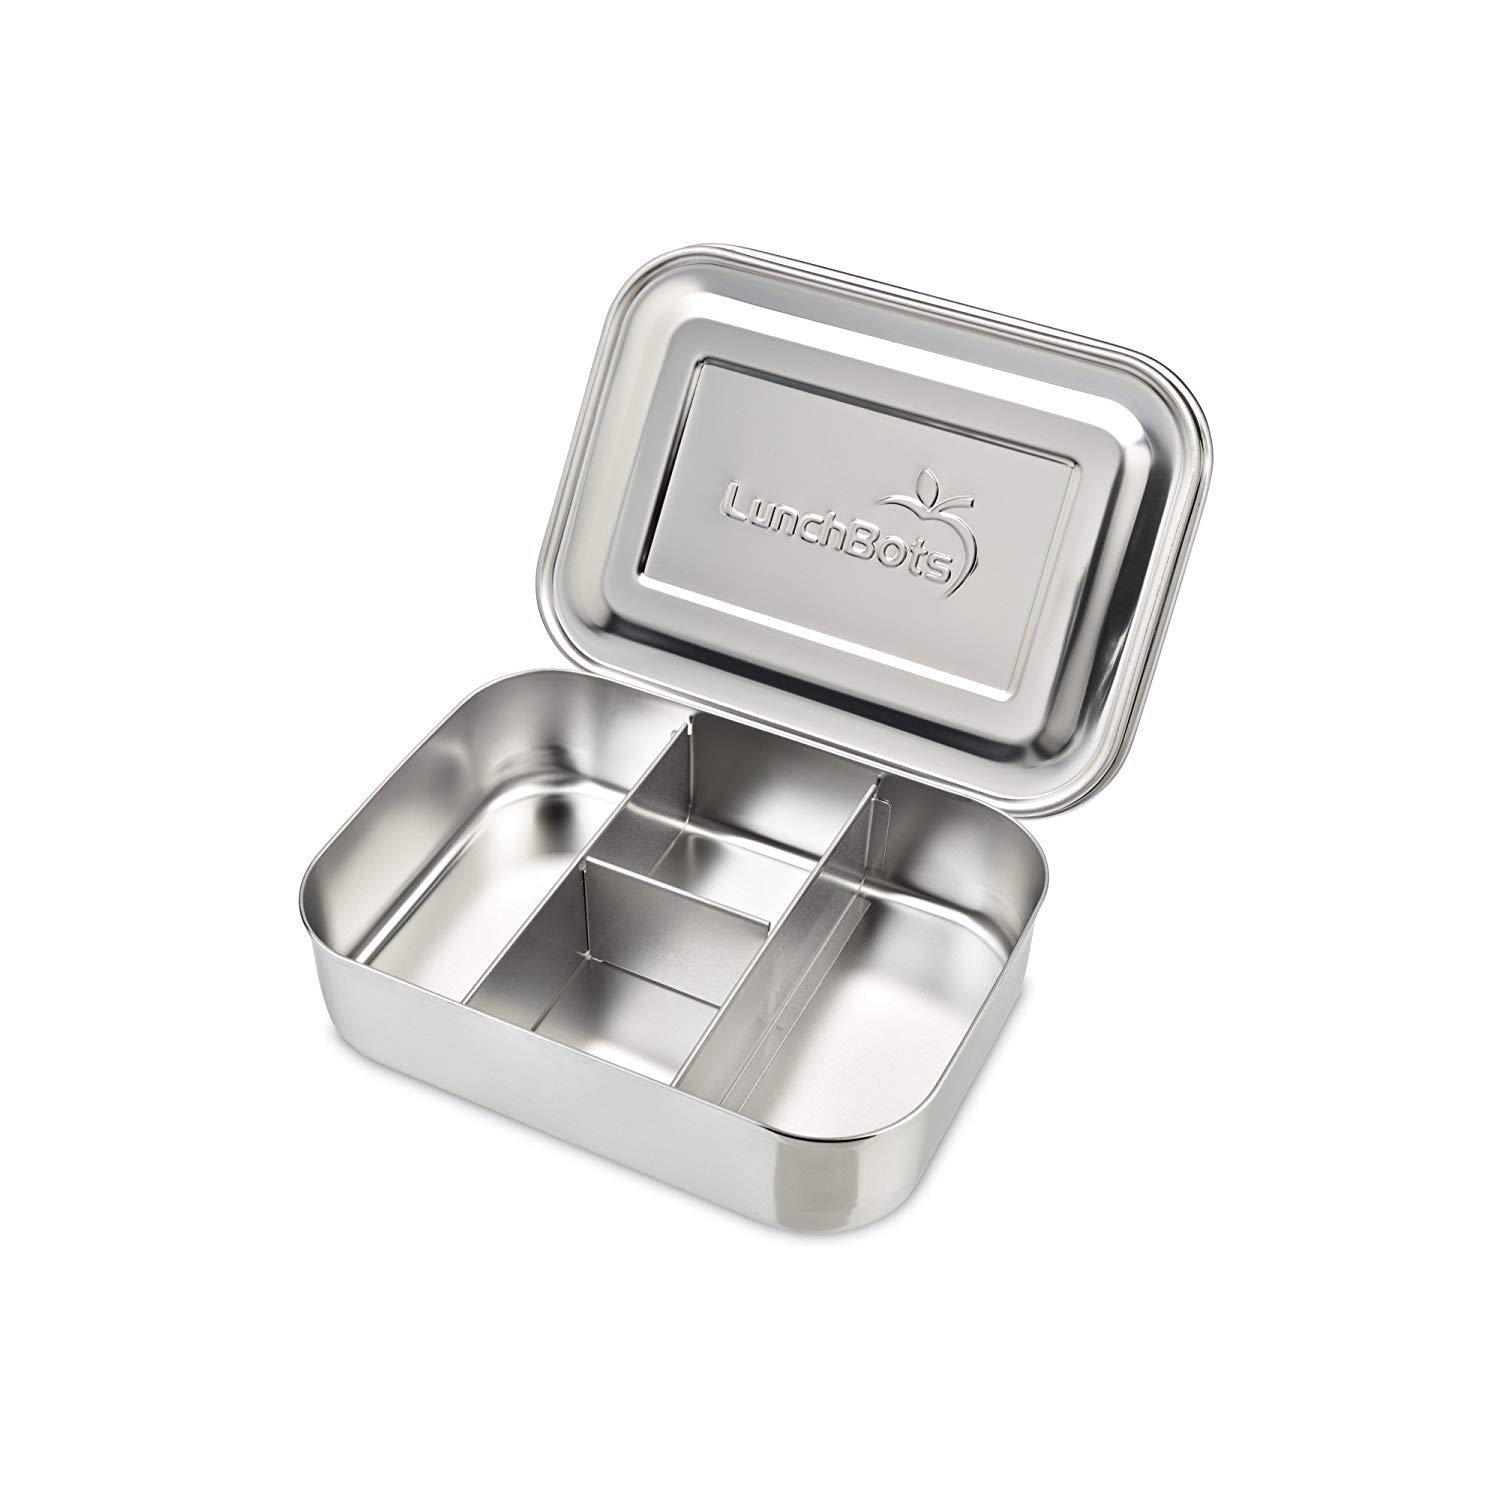 LunchBots Small Protein Packer Snack Container - Mini Stainless Steel Food Box With Portion Control Sections - Great for Nuts, Meat, Cheese and Finger Foods - Eco-Friendly, Dishwasher Safe and Durable